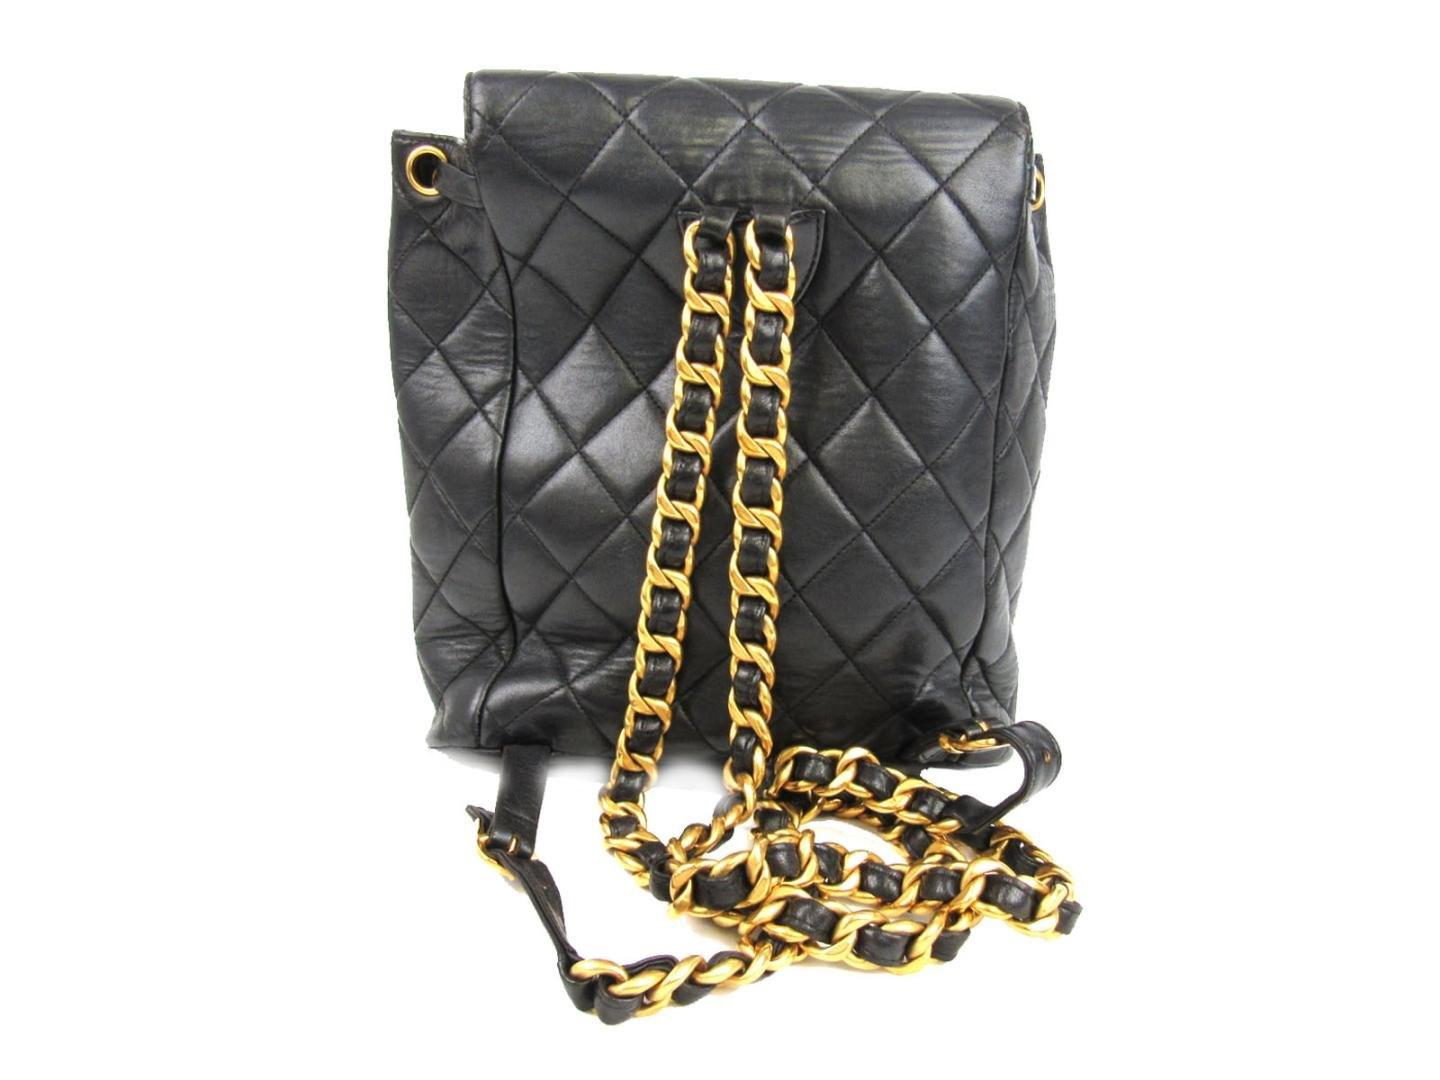 58788c4ee687 Chanel Matelasse Chain Backpack Cc Black Lambskin Leather Quilted in ...